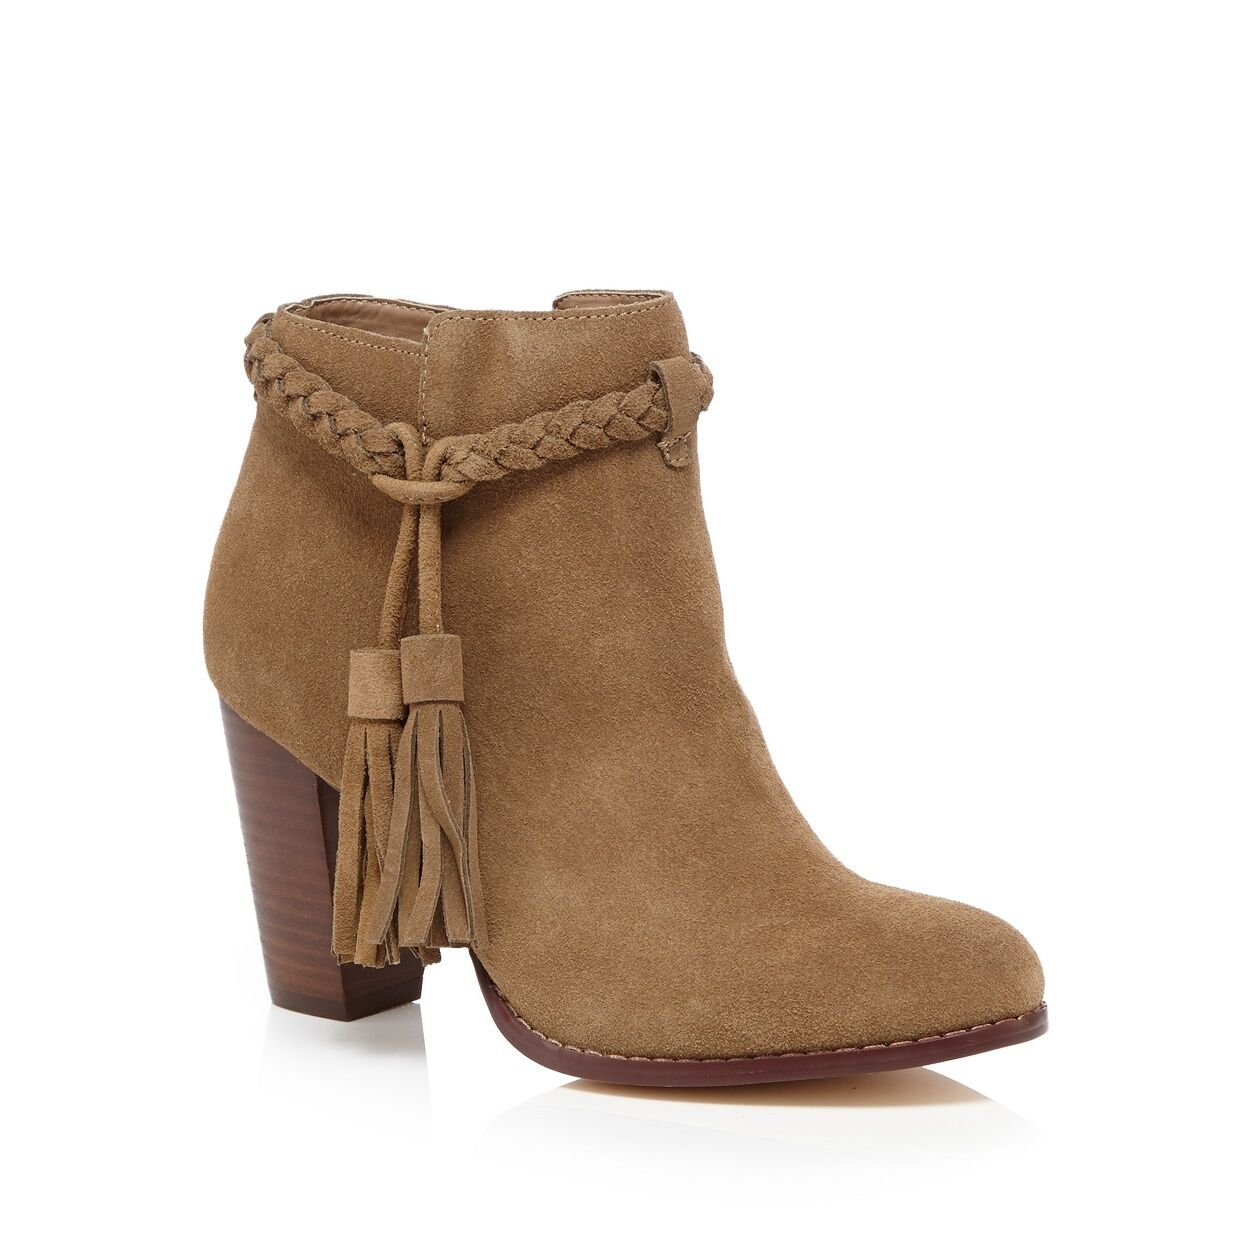 Faith Beige Leather 'Suzi' High Stiefel UK7 UK7 UK7 EU40  JS02 72 SALEw 743ccd